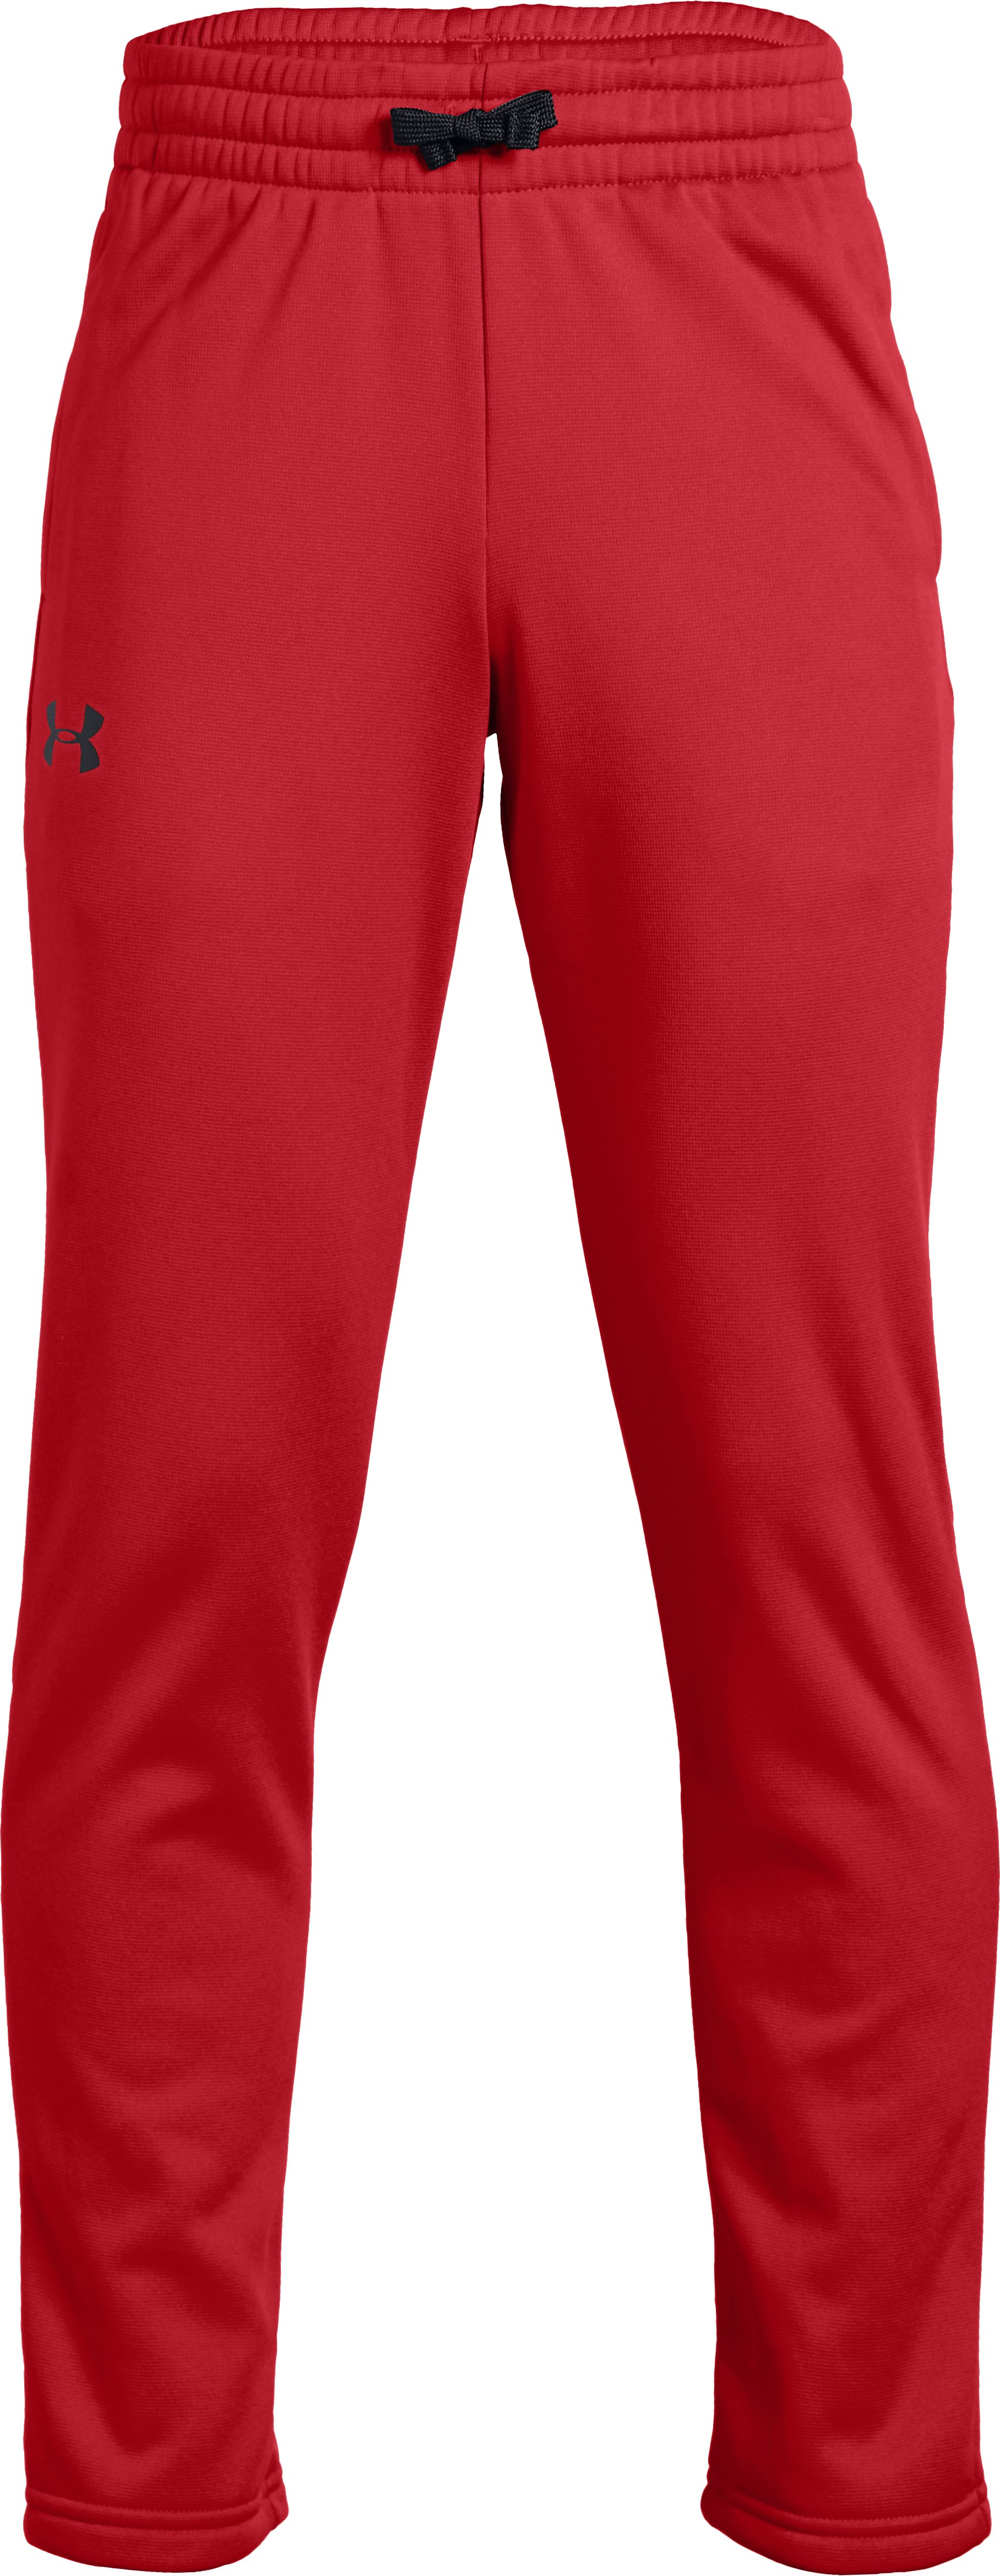 Boys' Armour Fleece® Pants 5 Colors $28.00